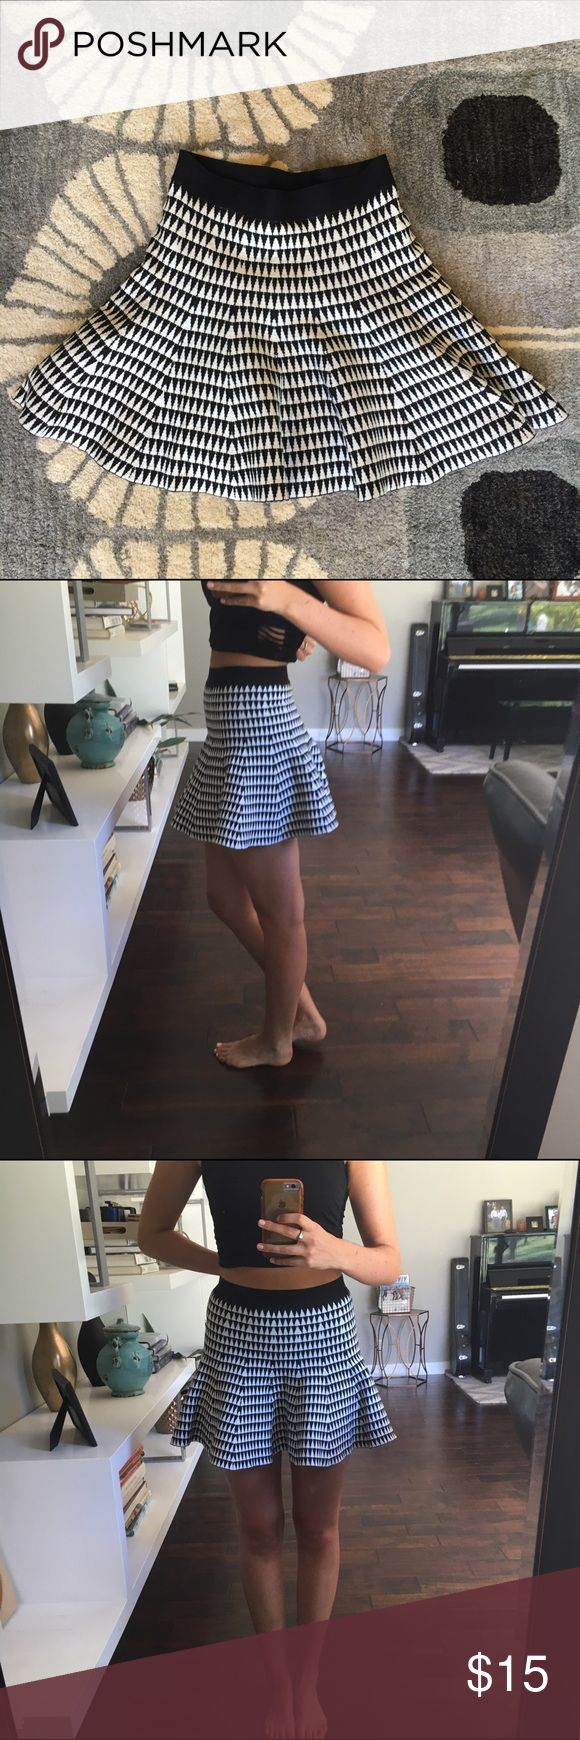 Black and white trumpet skirt! Adorable flared skirt with black and white triangle pattern. Thick black elastic waste band and measures about 15 inches from waste to hem. Thick stretchy fabric for a comfy feel. NEVER WORN. No trades please Forever 21 Skirts Mini